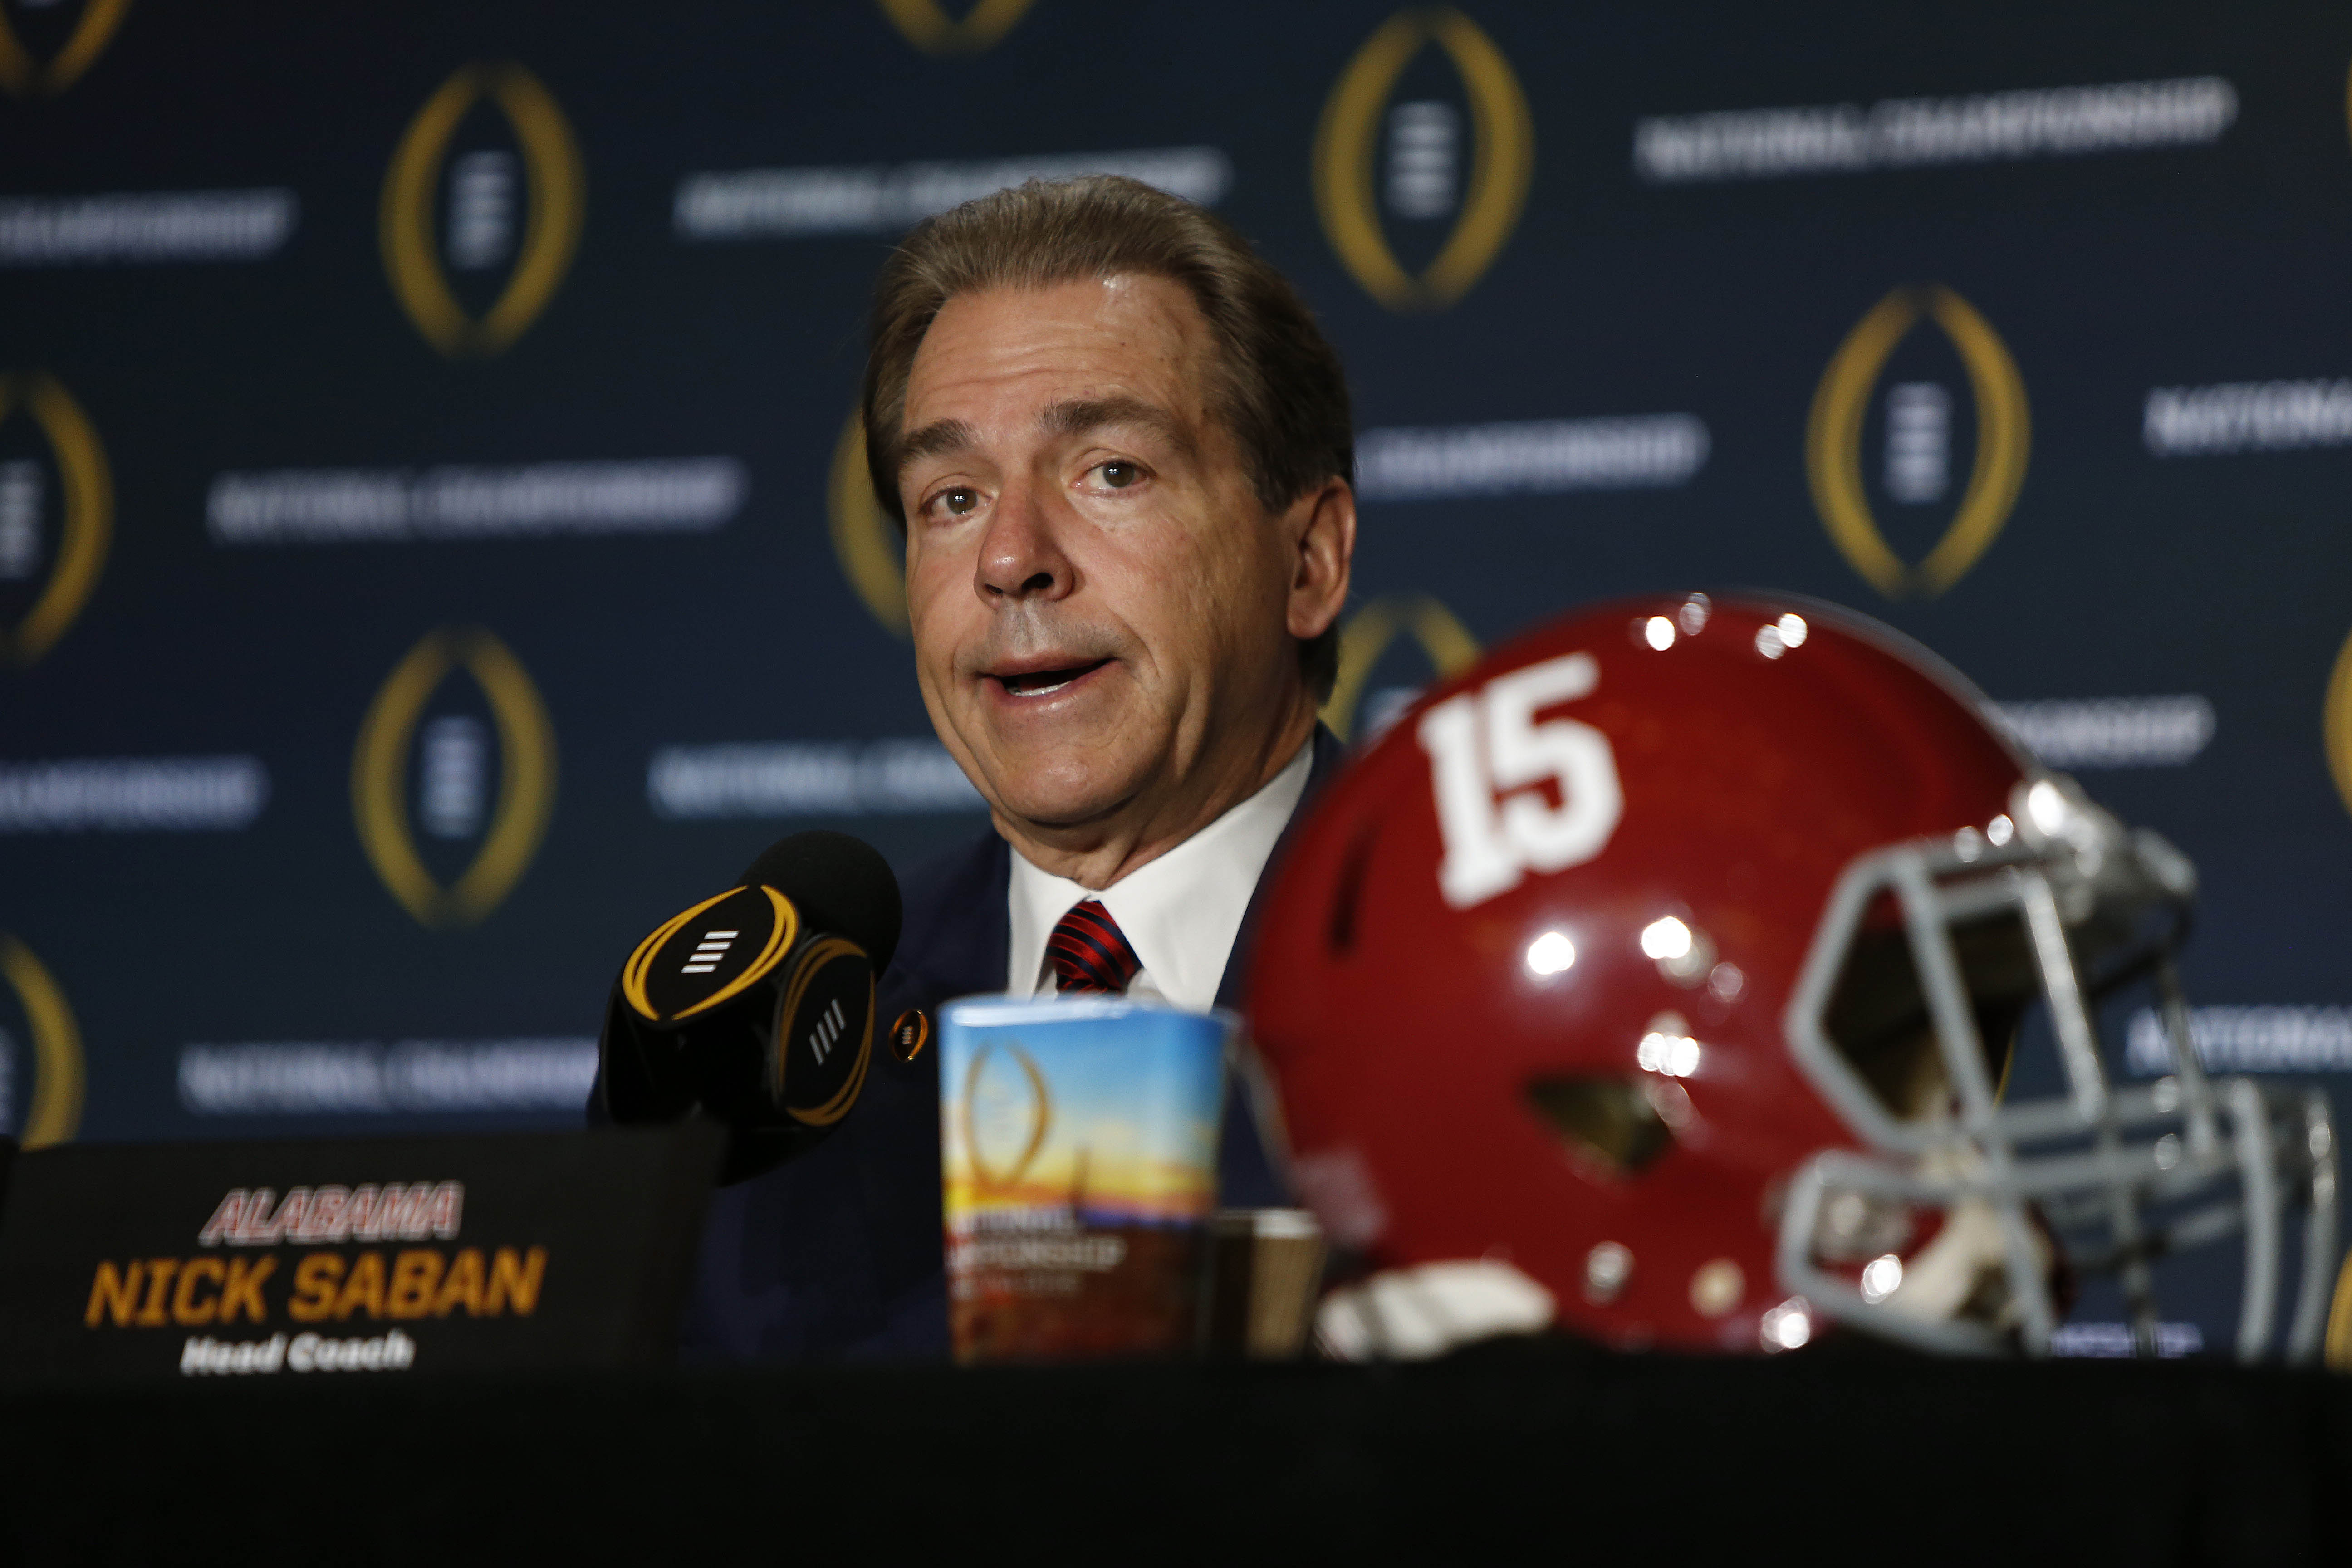 Nick Saban again calling for NFL Draft grades delay, and his players agree